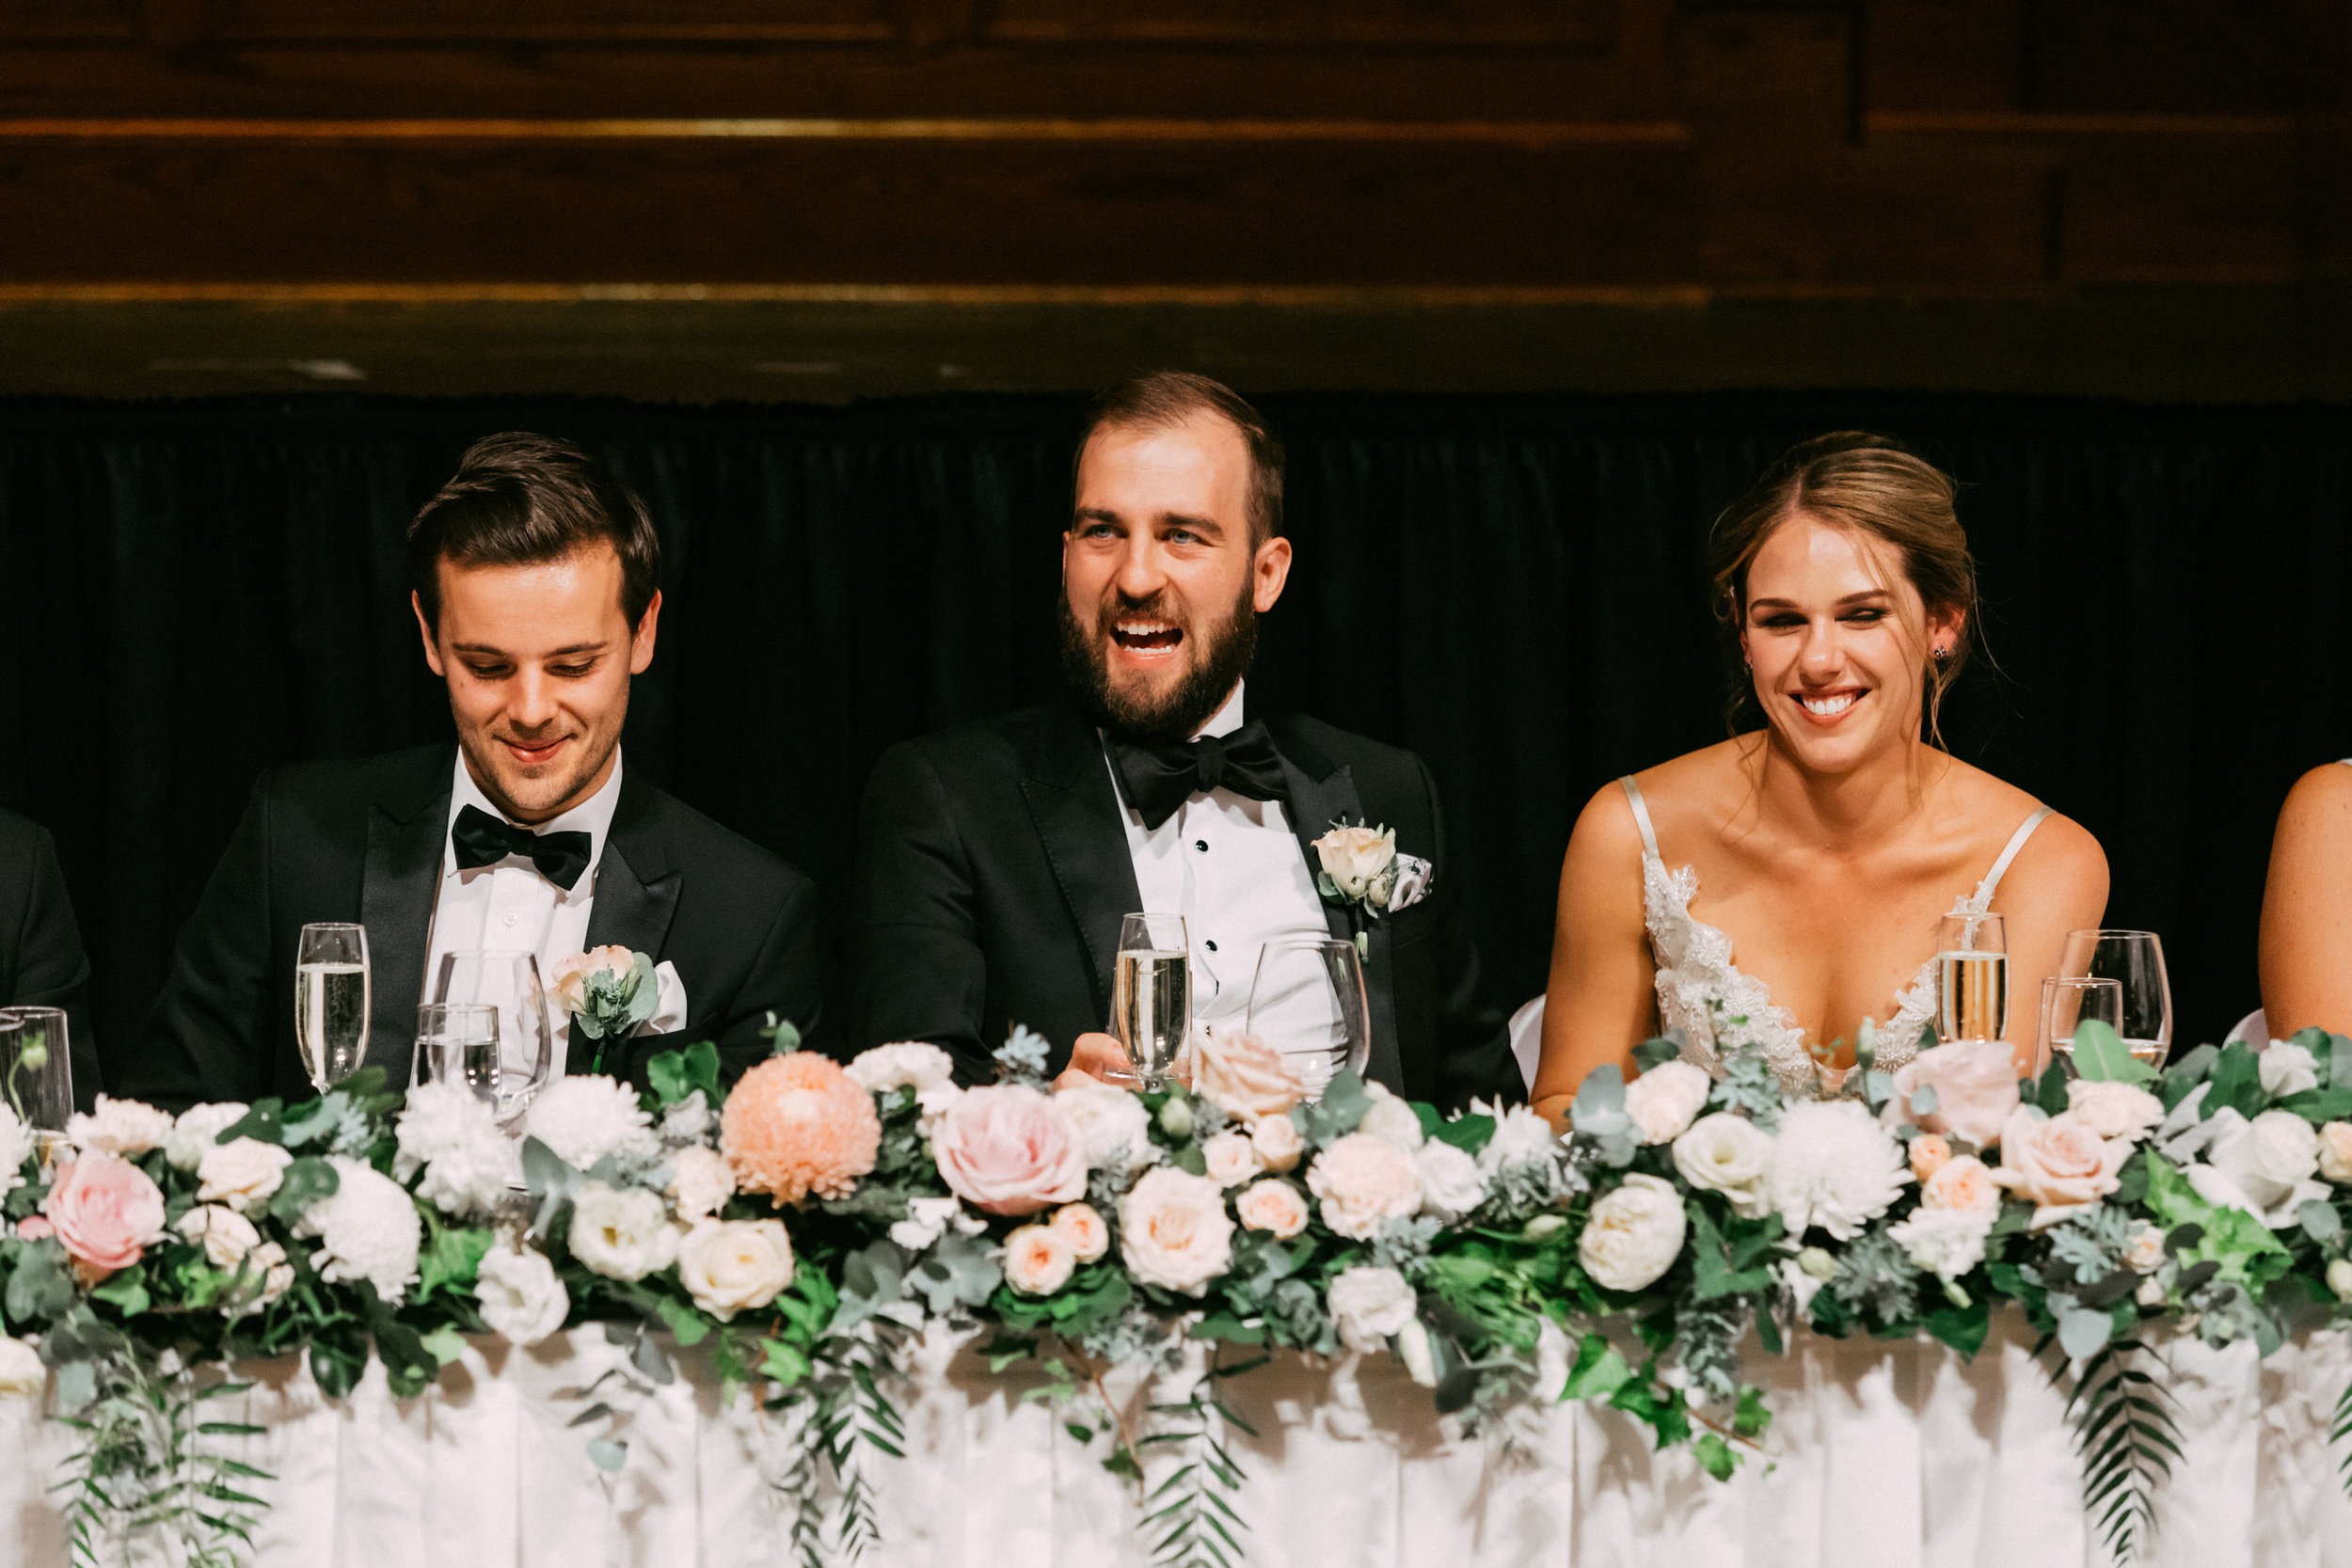 Adelaide Wedding 2019 166.jpg